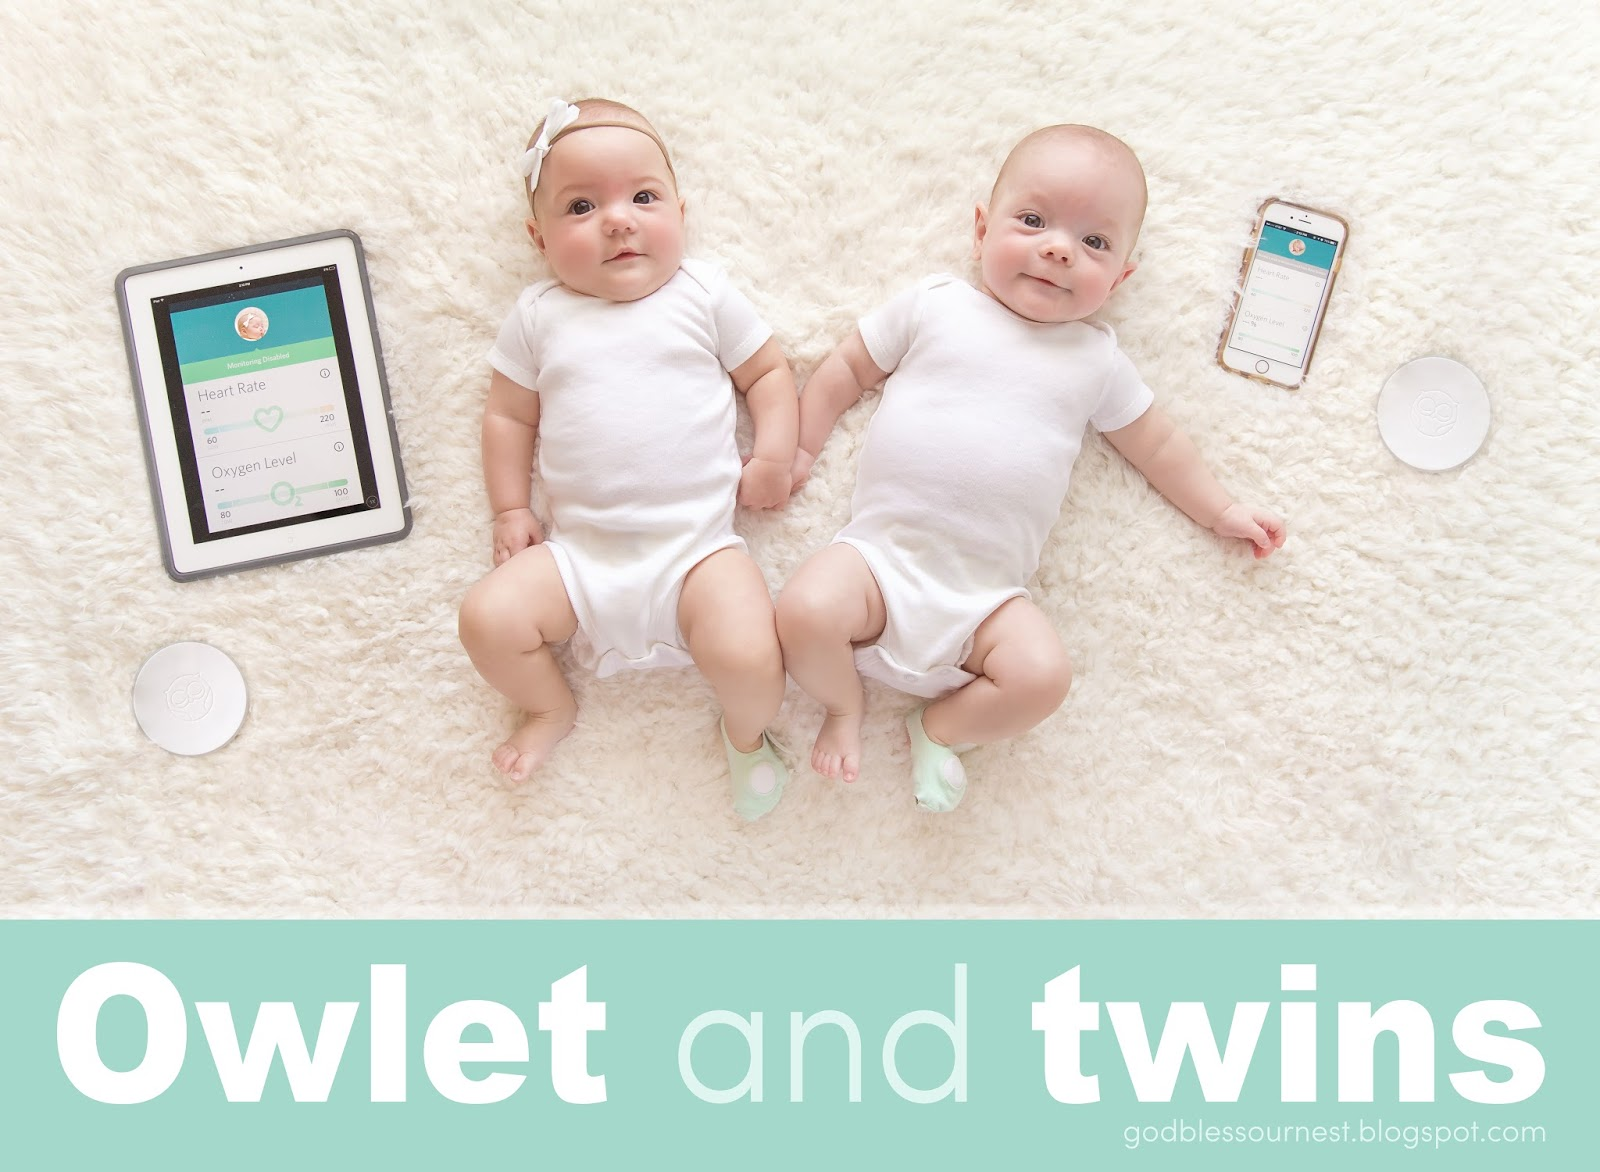 Owlet baby monitor and twins